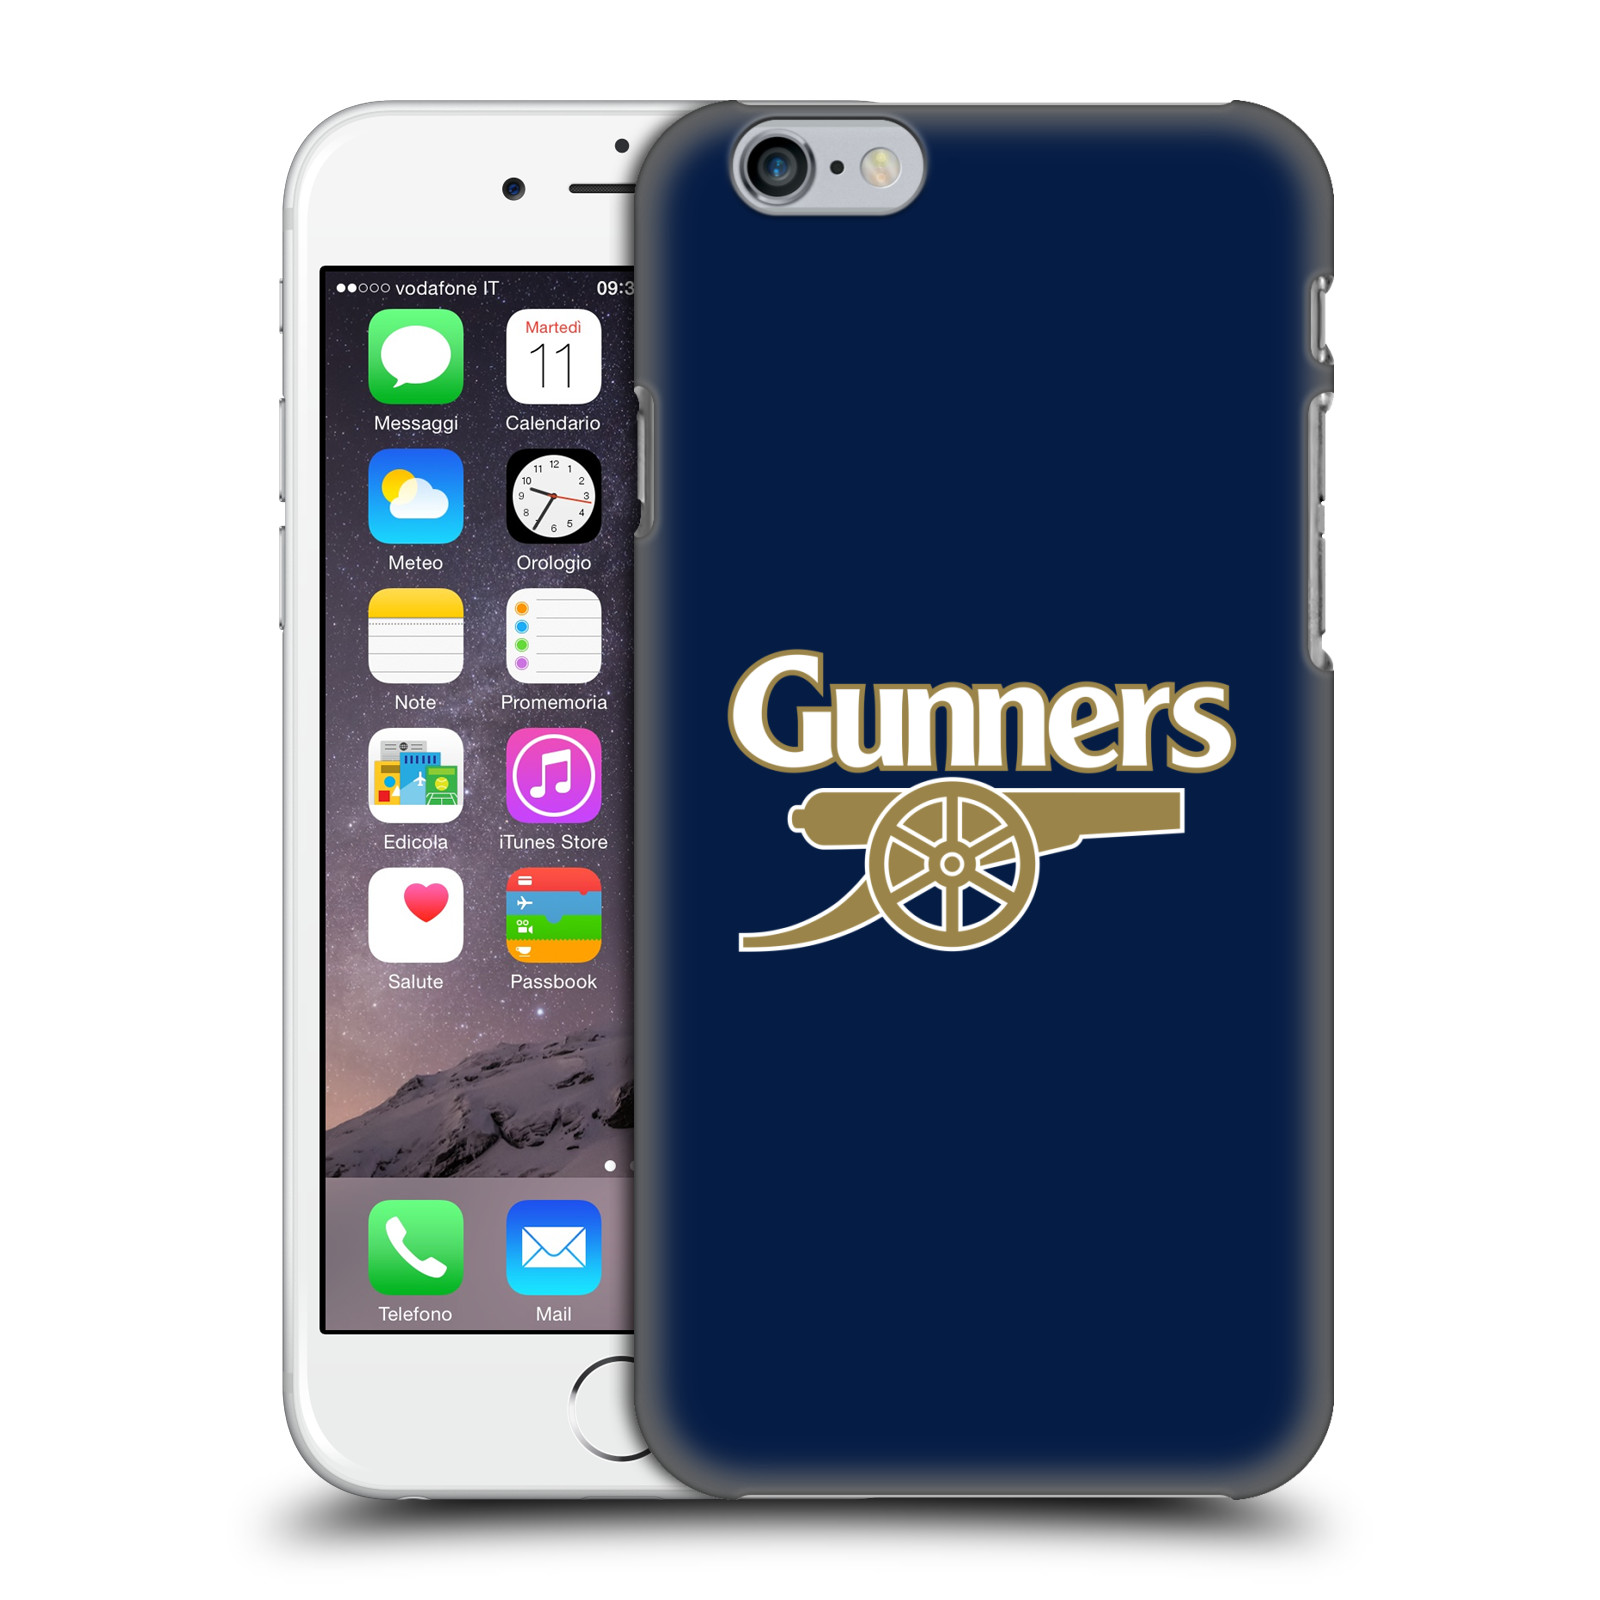 Plastové pouzdro na mobil Apple iPhone 6 - Head Case - Arsenal FC - Gunners